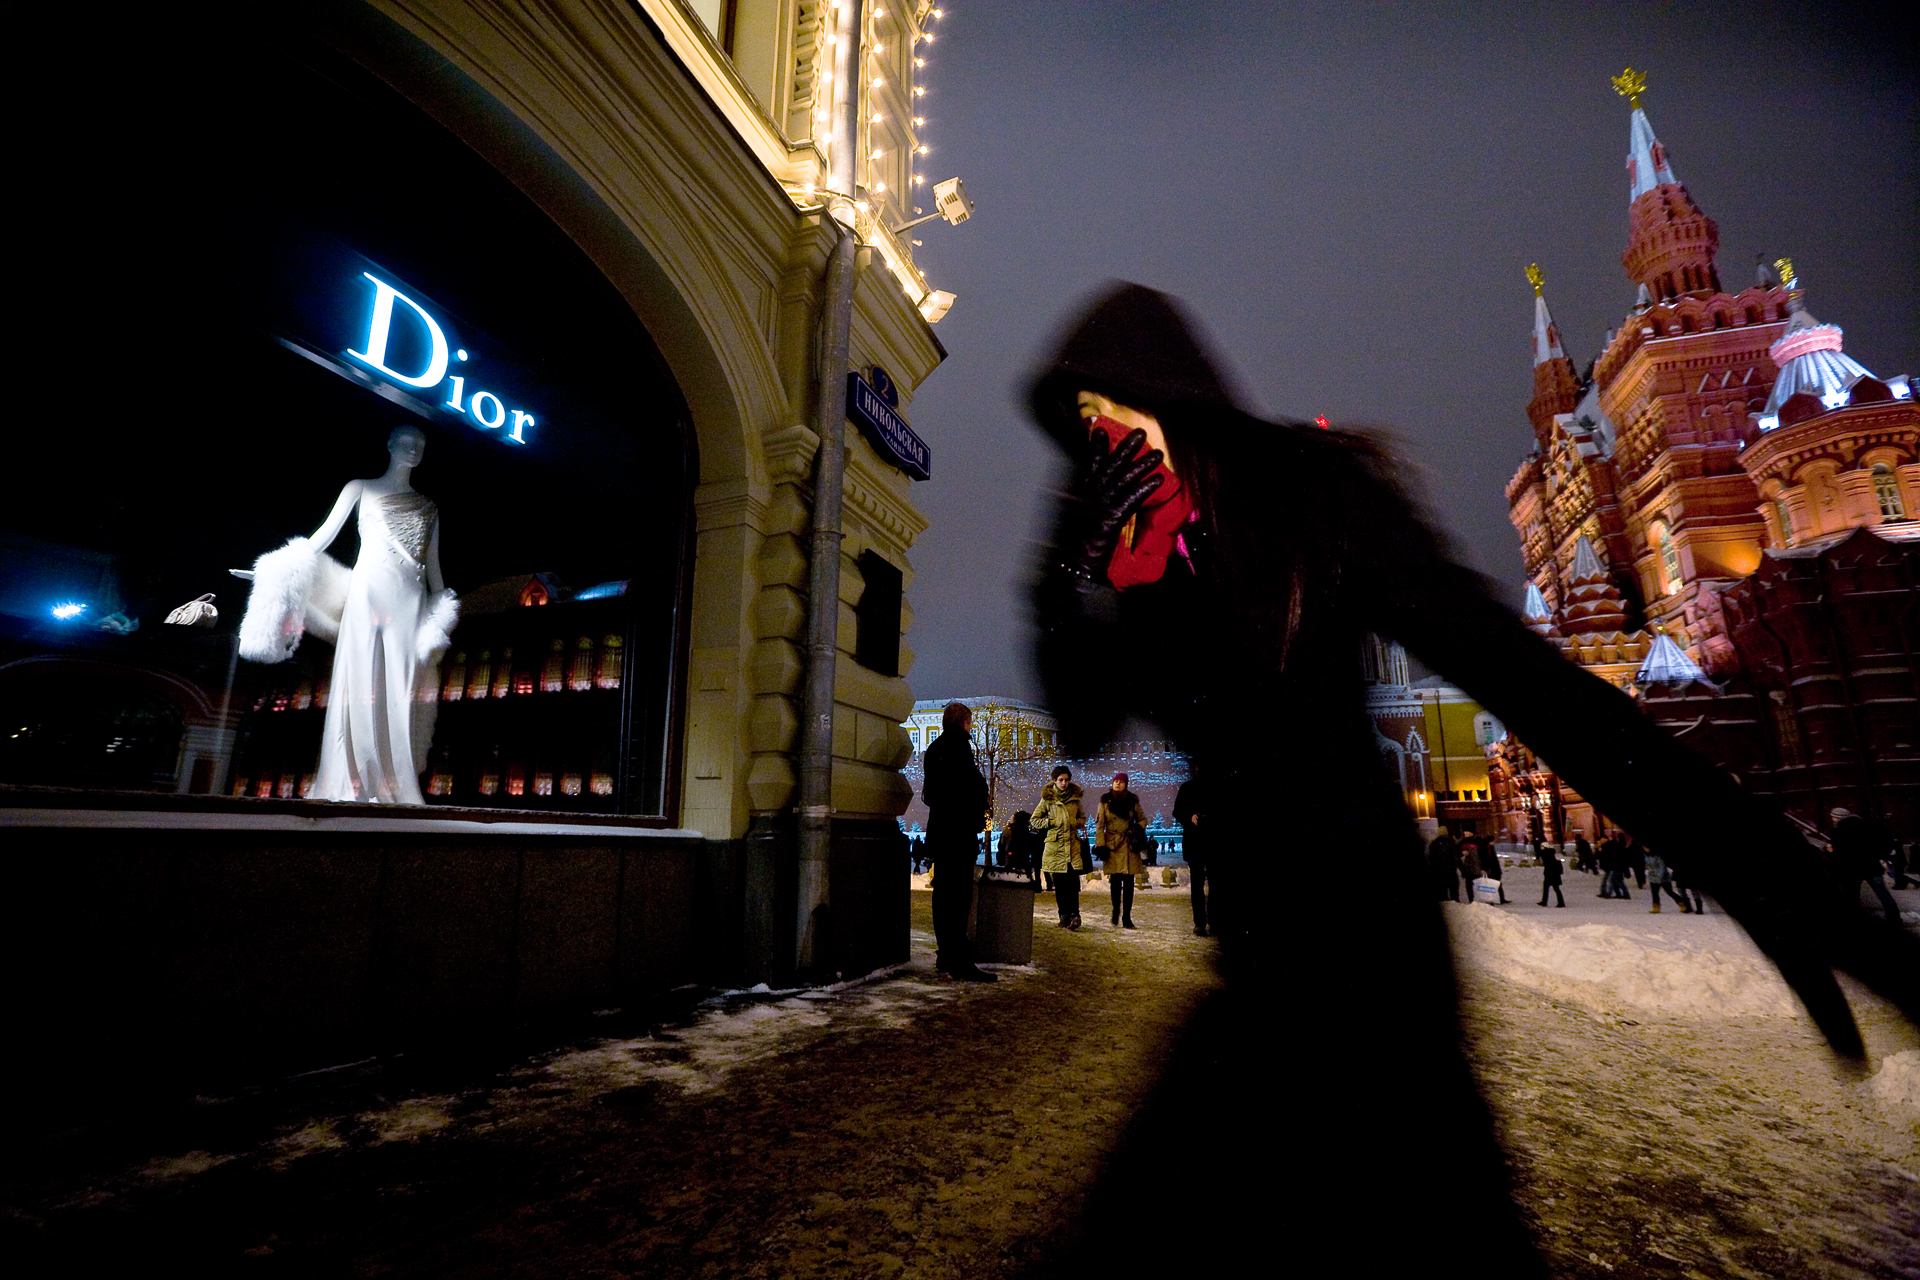 6:01PM - A shopper scythes through bitter cold to reach a boutique on Red Square. These materialistic days, Marx and Lenin can't compete with Dior and Armani for the hearts of the consuming class.